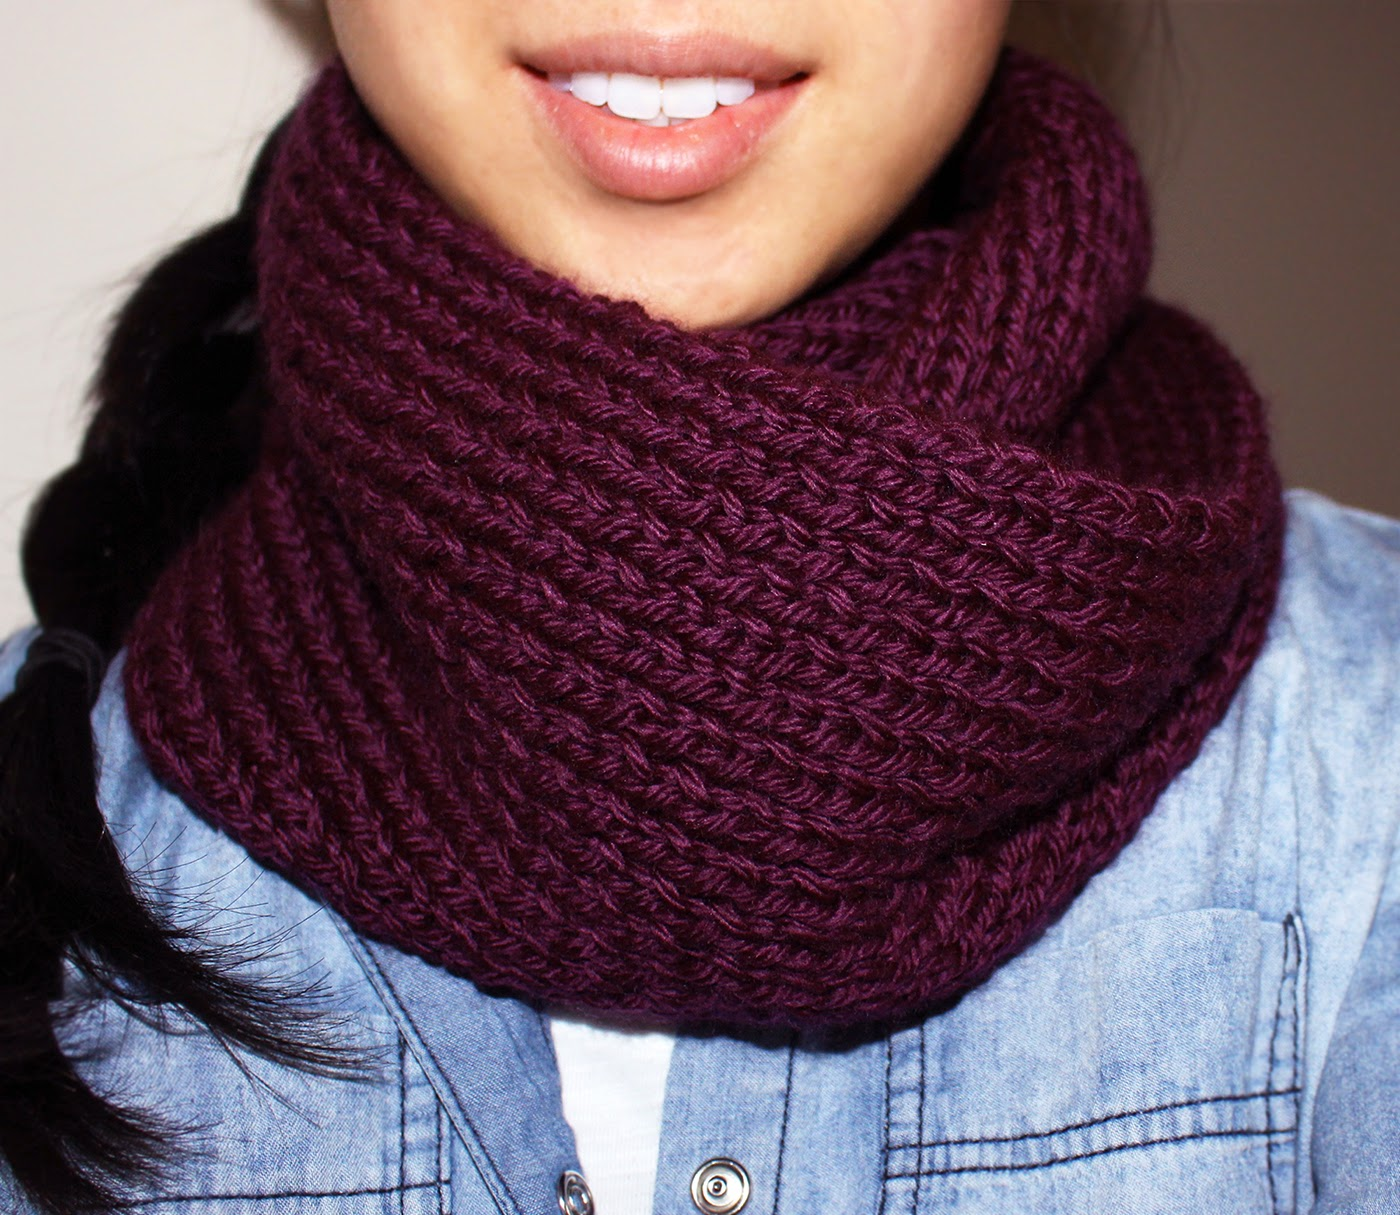 7 Ways: How To Knit An Infinity Scarf Pattern